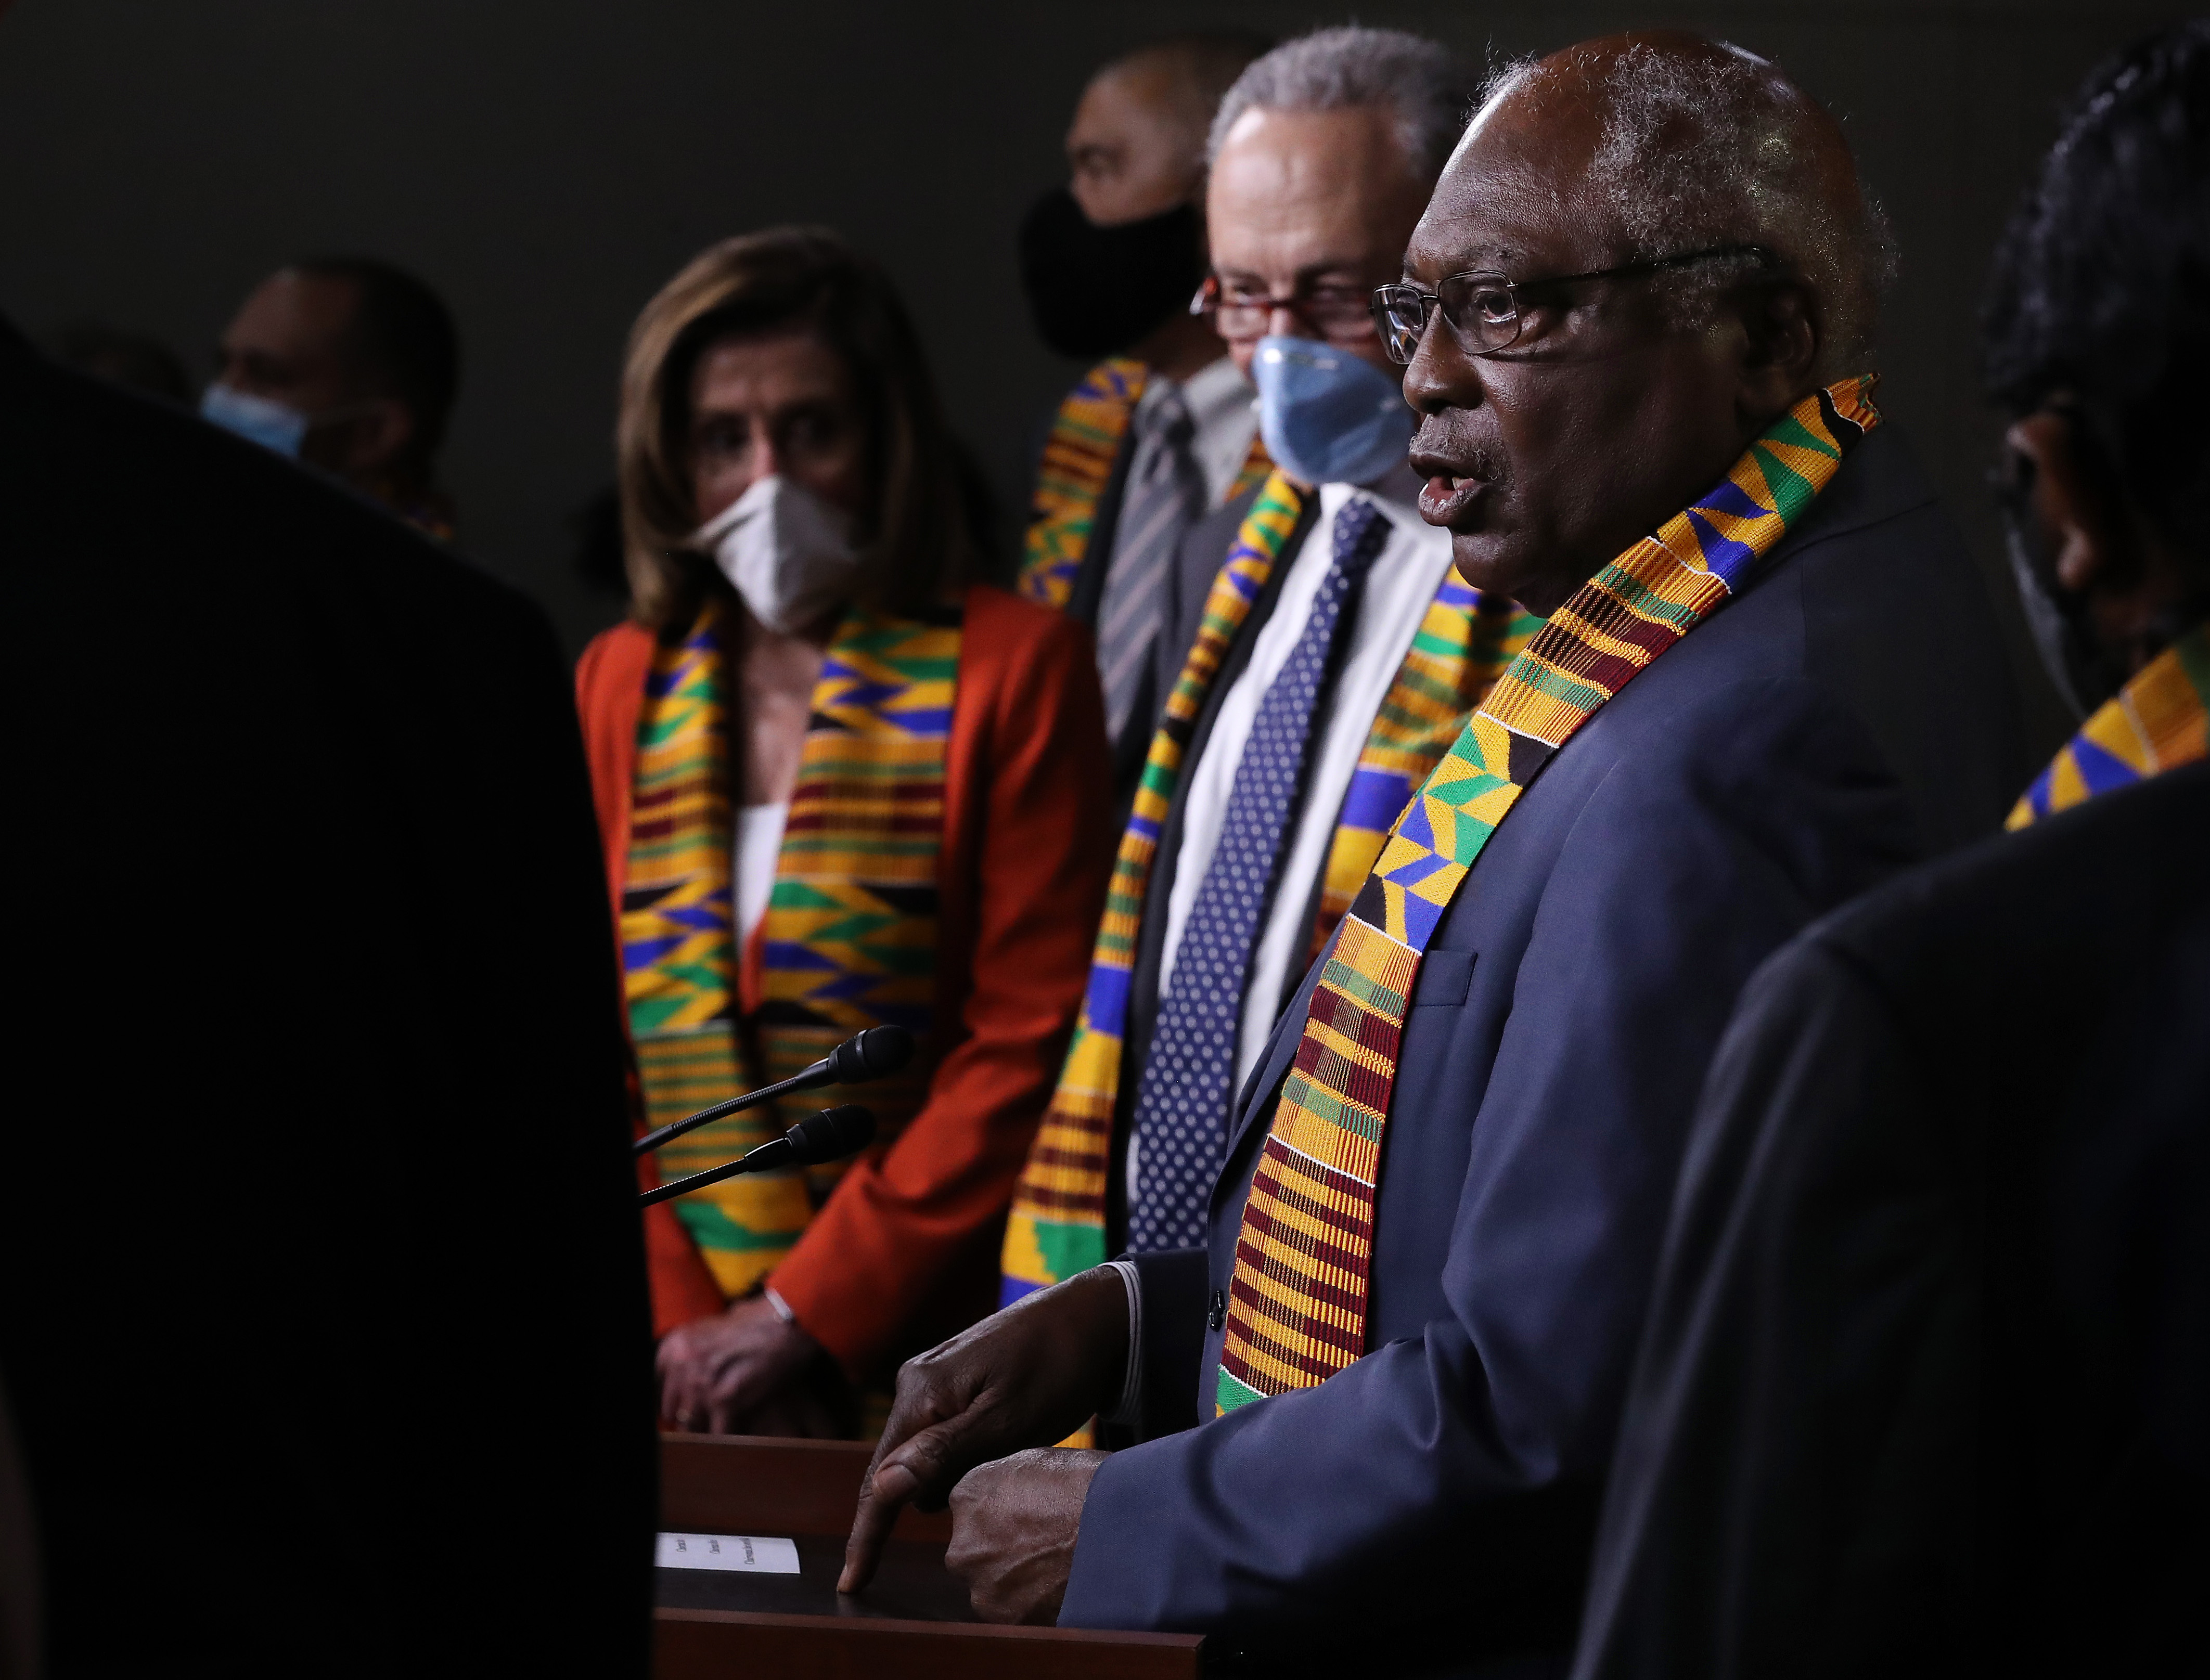 Clyburn, in a blue suit, and with a kente cloth stole around his neck, speaks as Schumer — in a navy suit — and Pelosi — in a red suit — look on. Both Pelosi and Schumer are wearing masks, and both also have on kente cloth stoles.